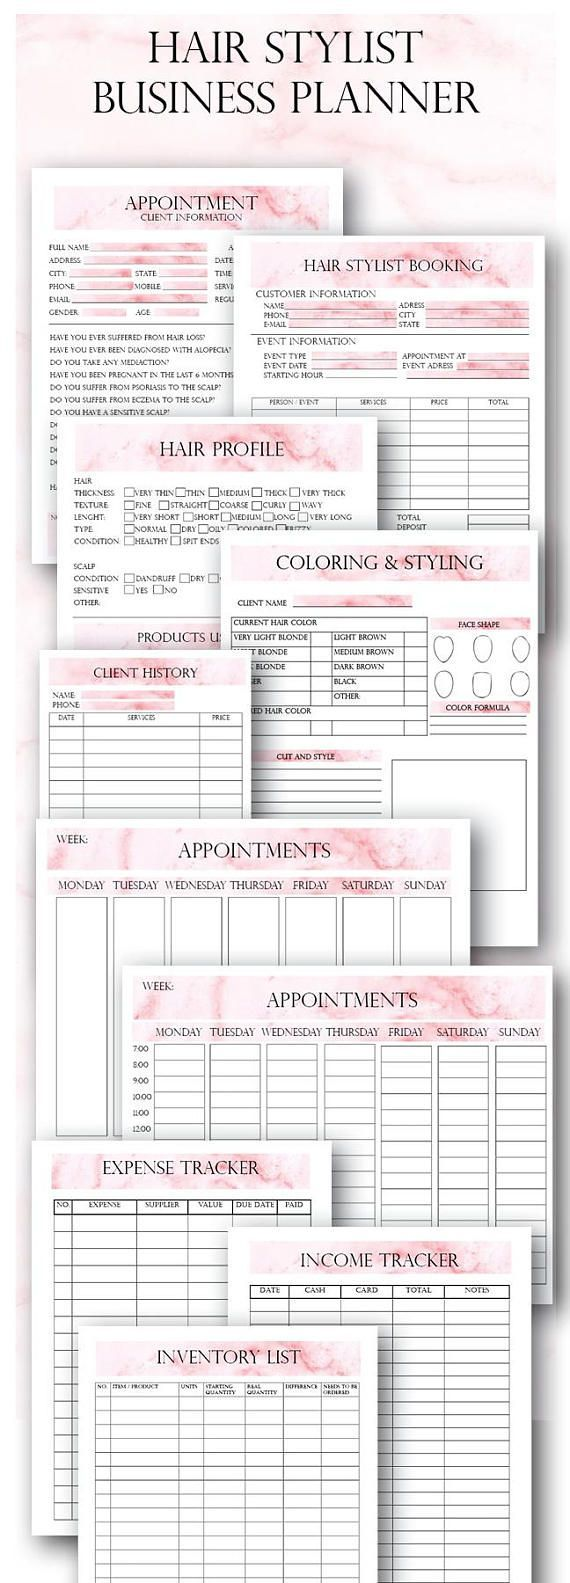 Pink Hair Stylist Printable Business Forms, Hair Stylist